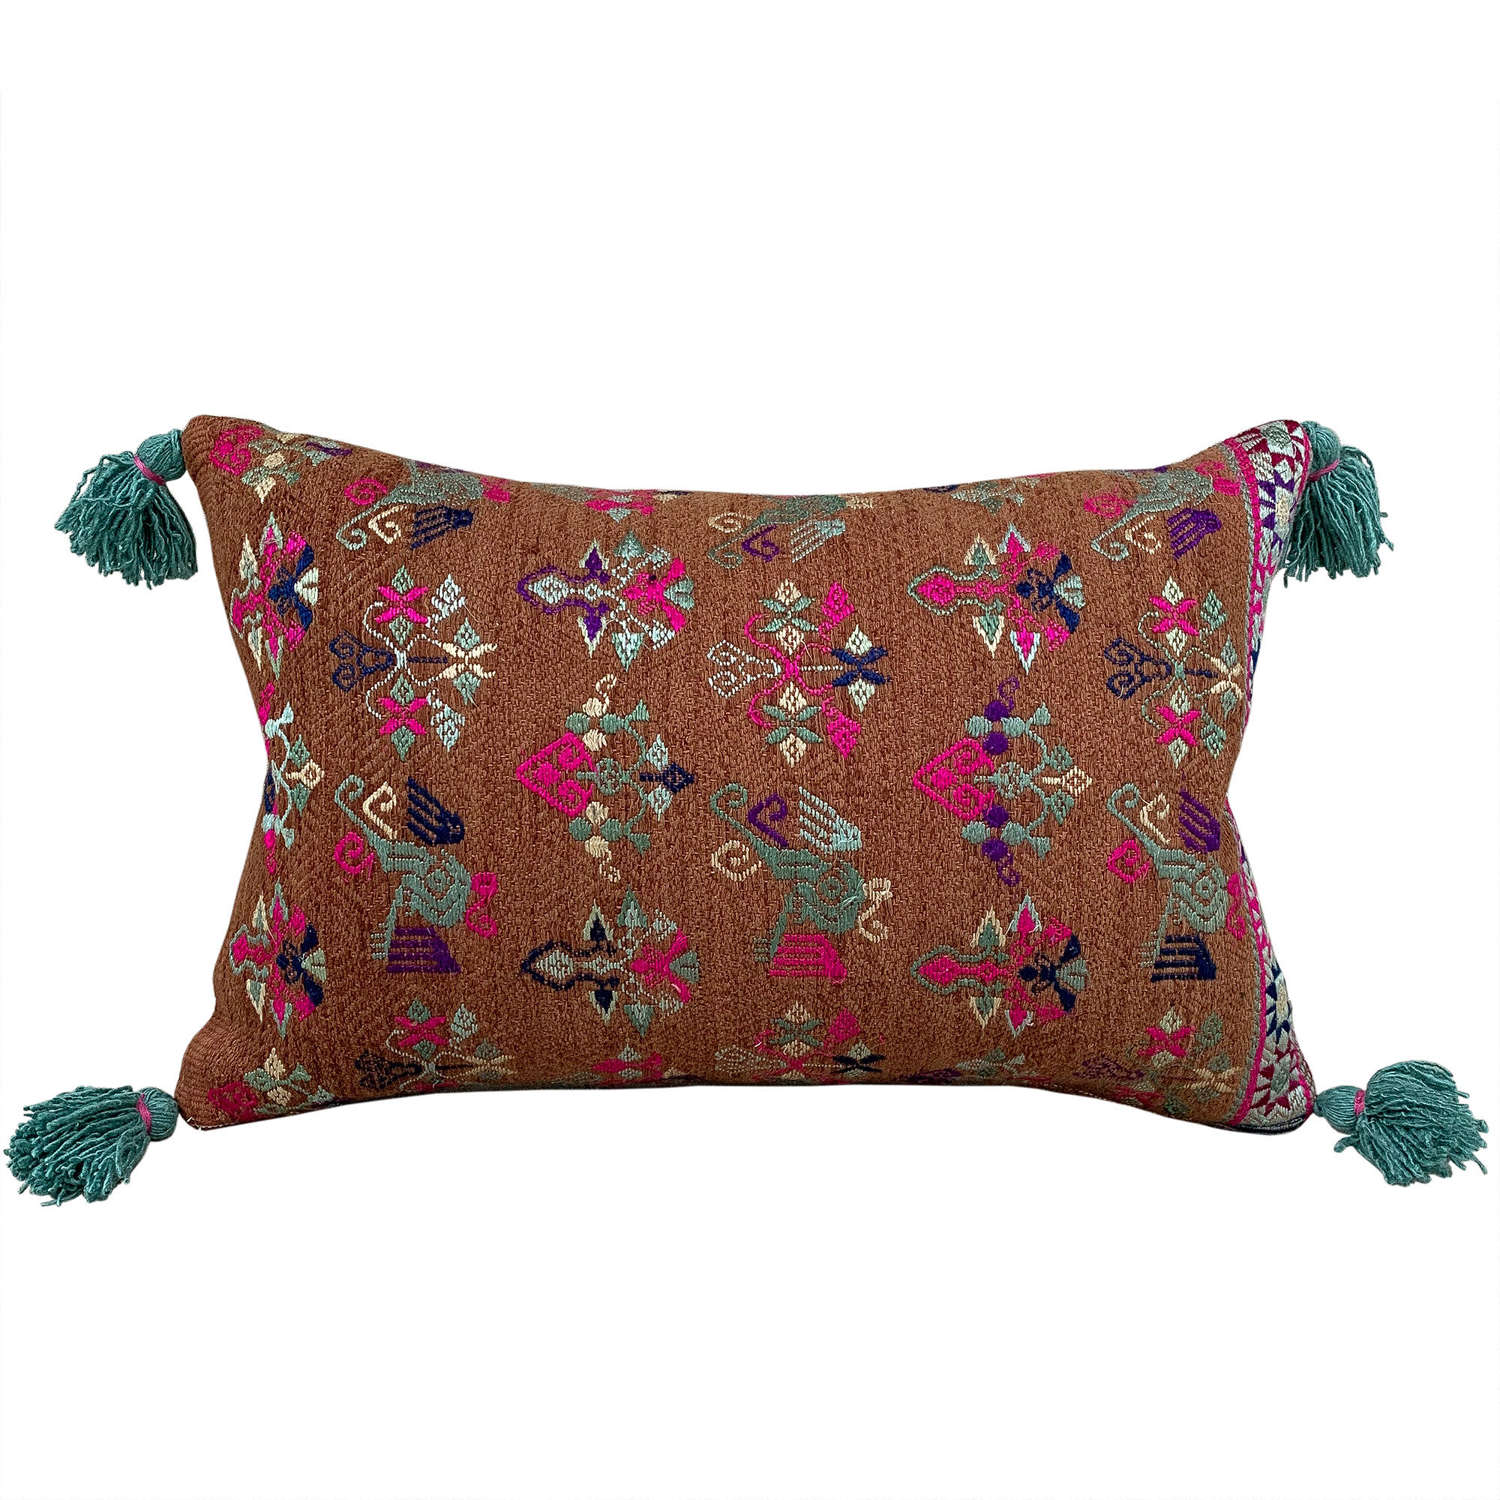 Maonan Cushion with Green Tassels